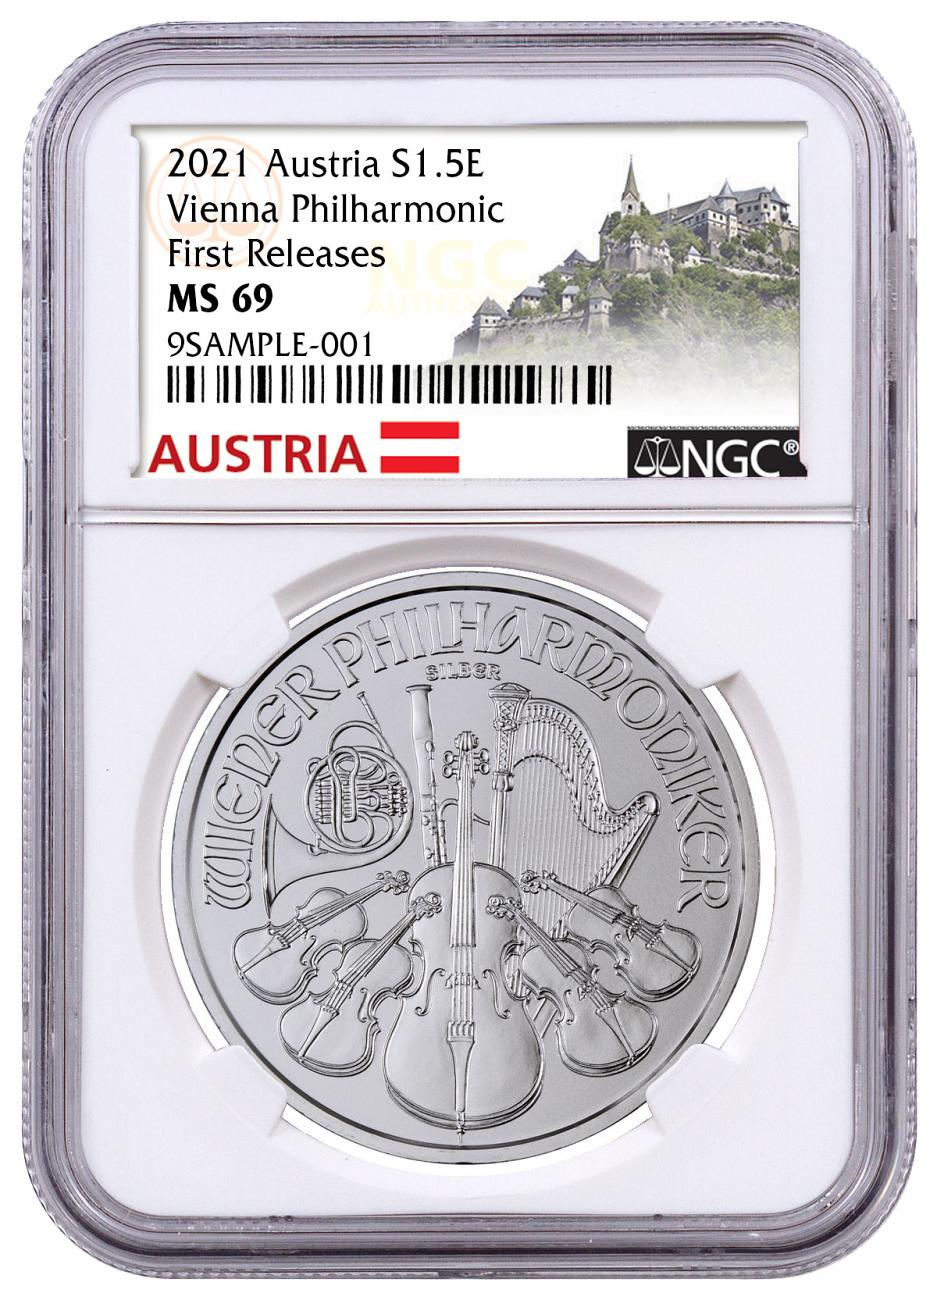 2021 Austria 1 oz Silver Philharmonic €1.50 Coin NGC MS69 FR Exclusive Austria Label